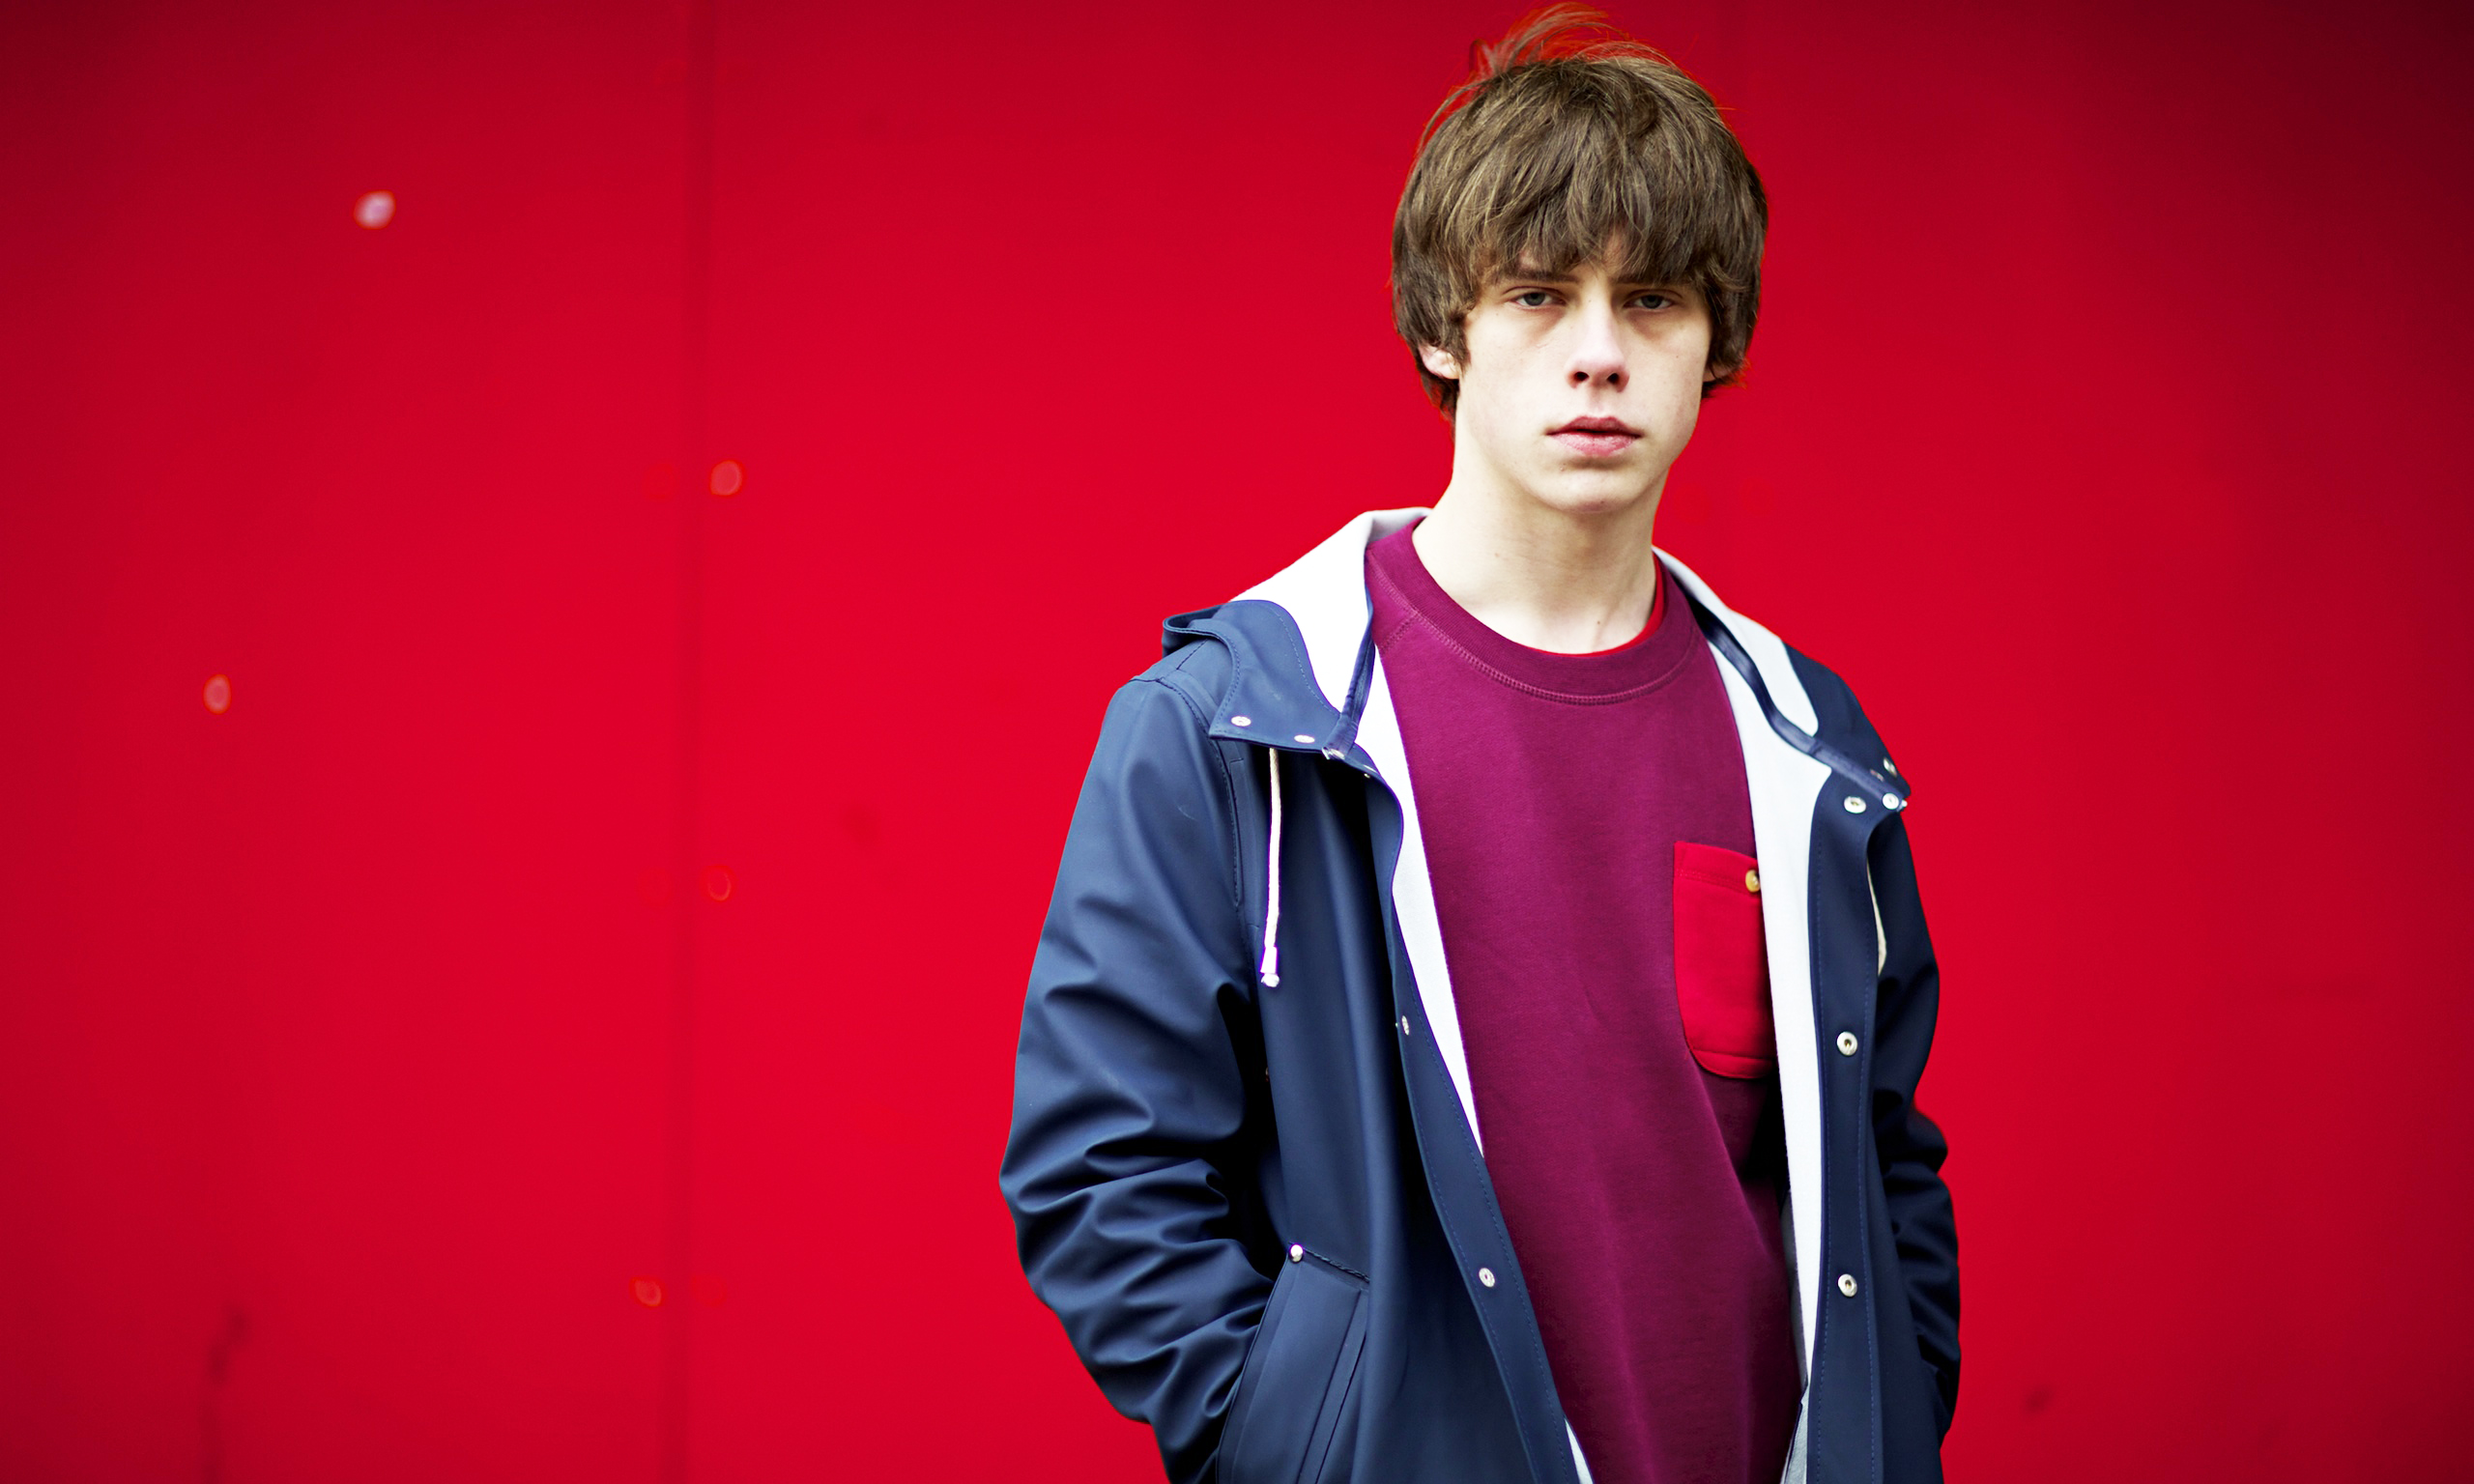 Jake Bugg Wallpaper